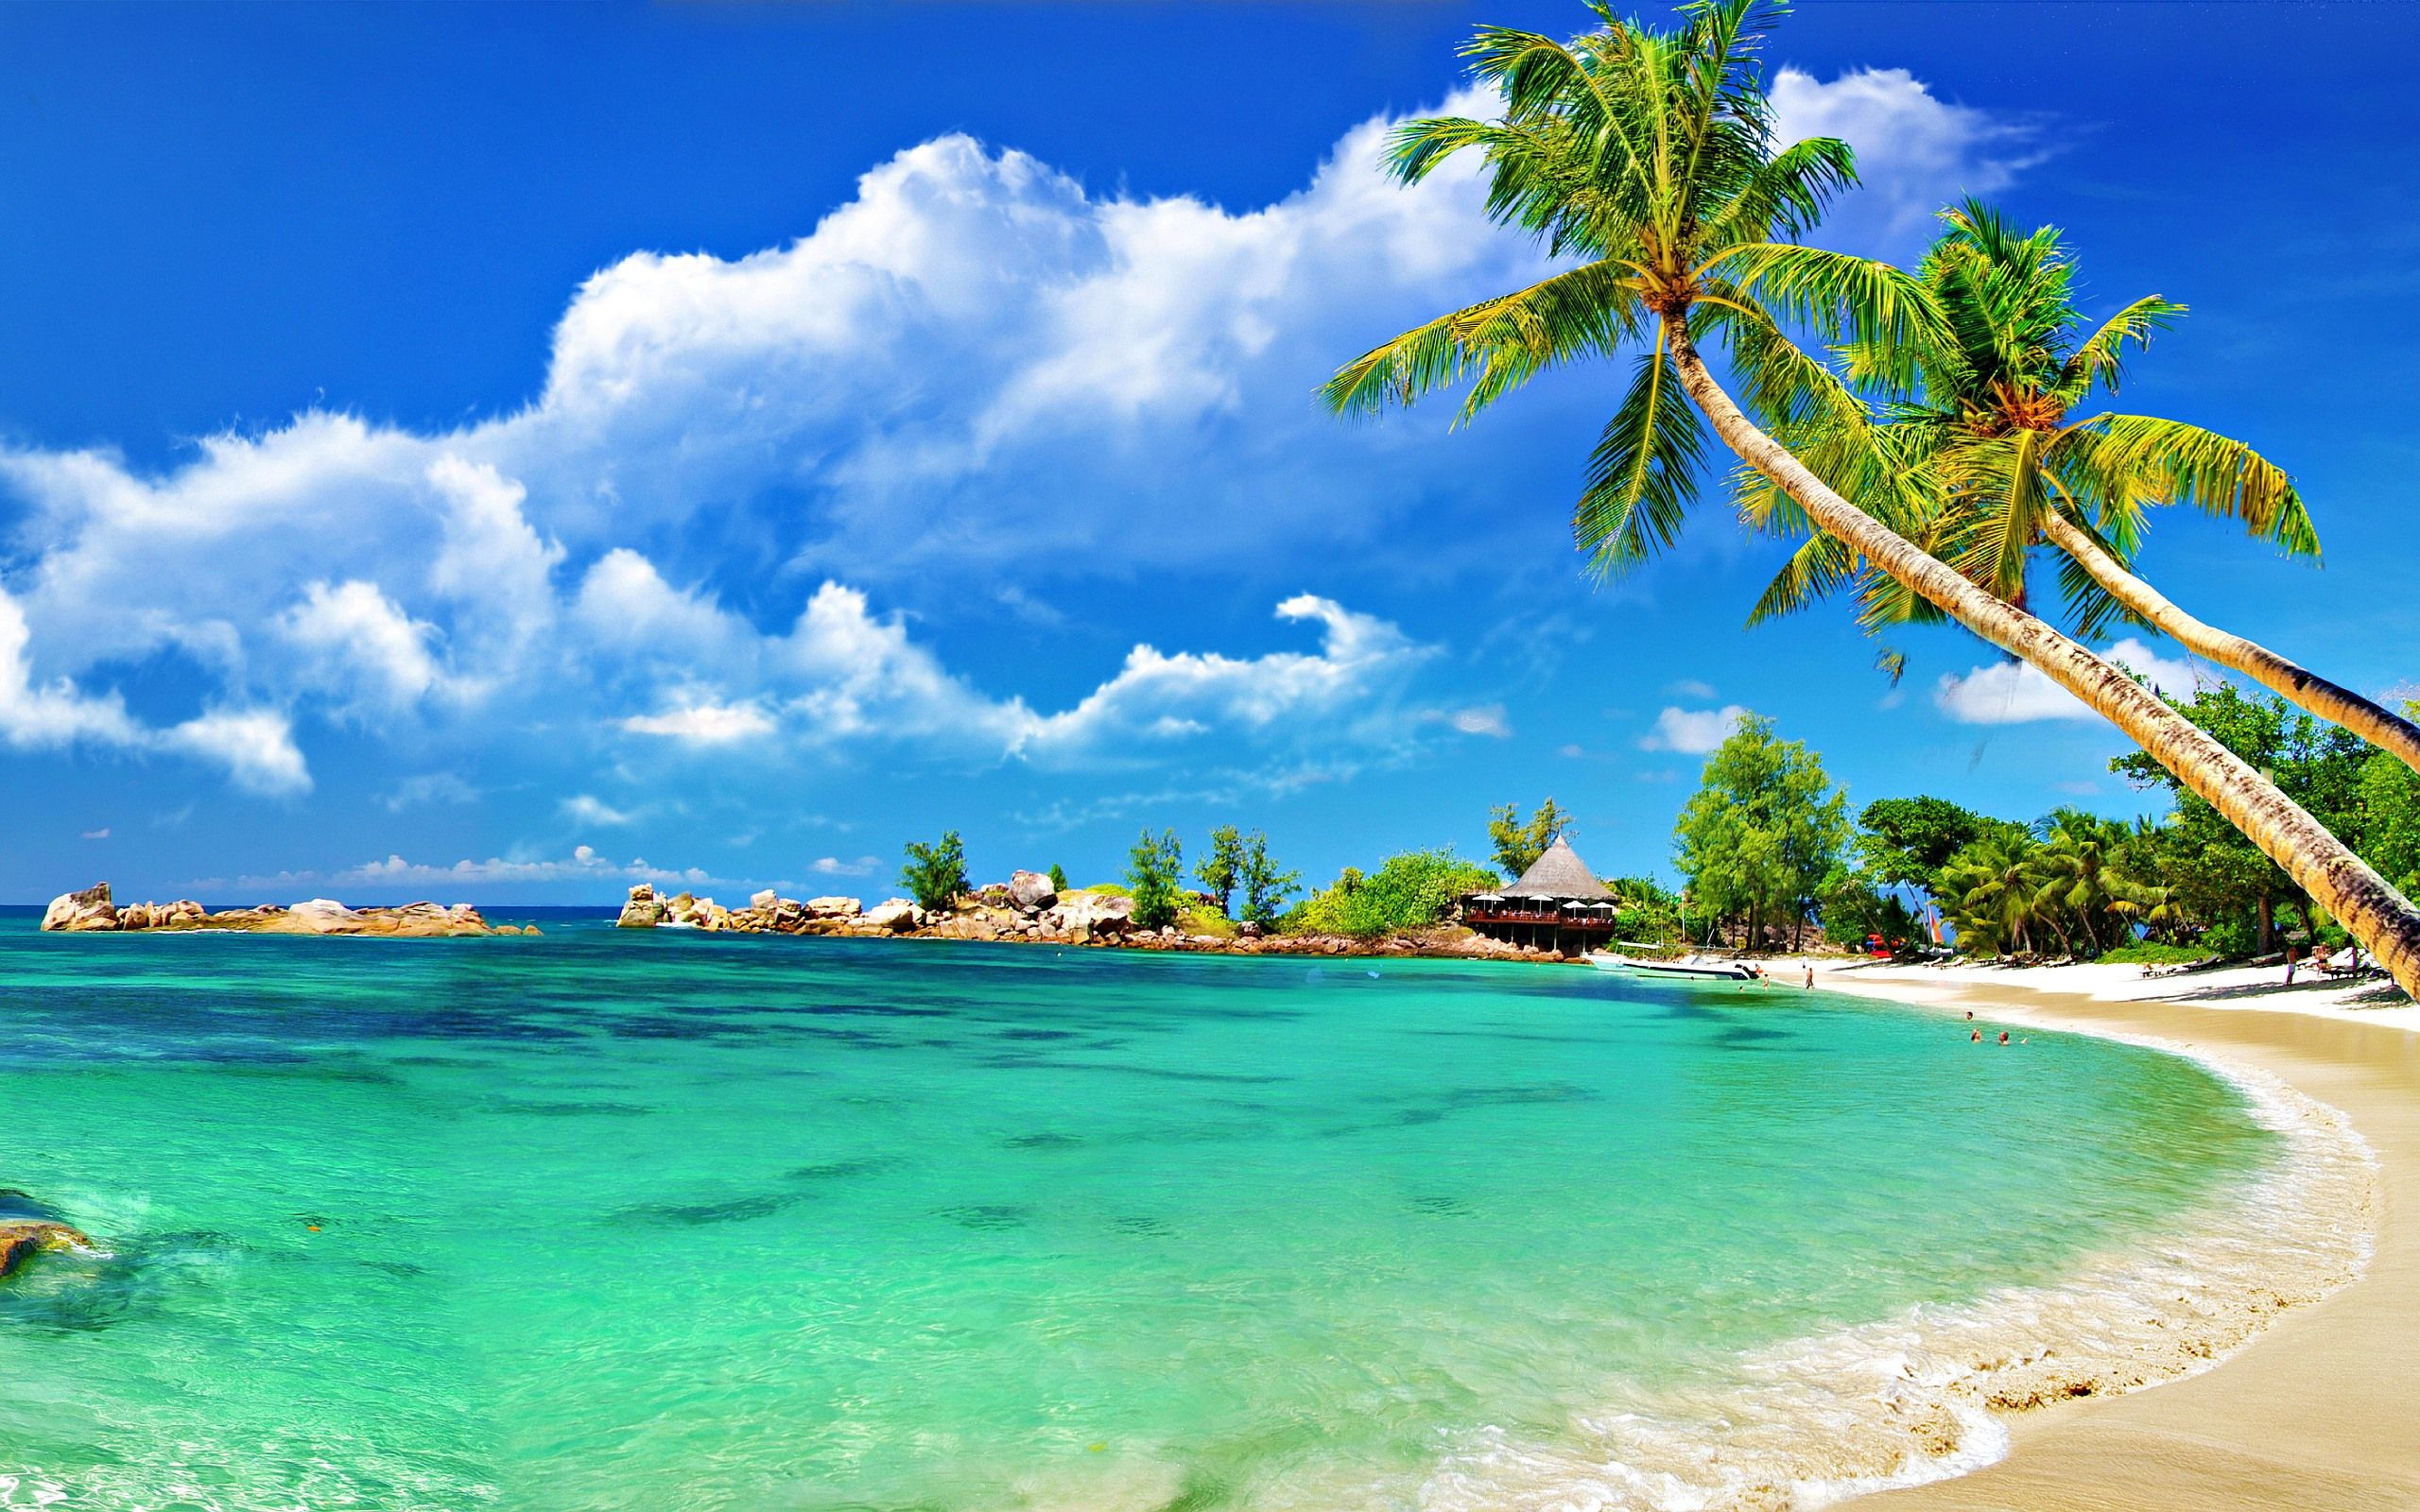 Beach Desktop Nature Beach wallpaper, Beach background